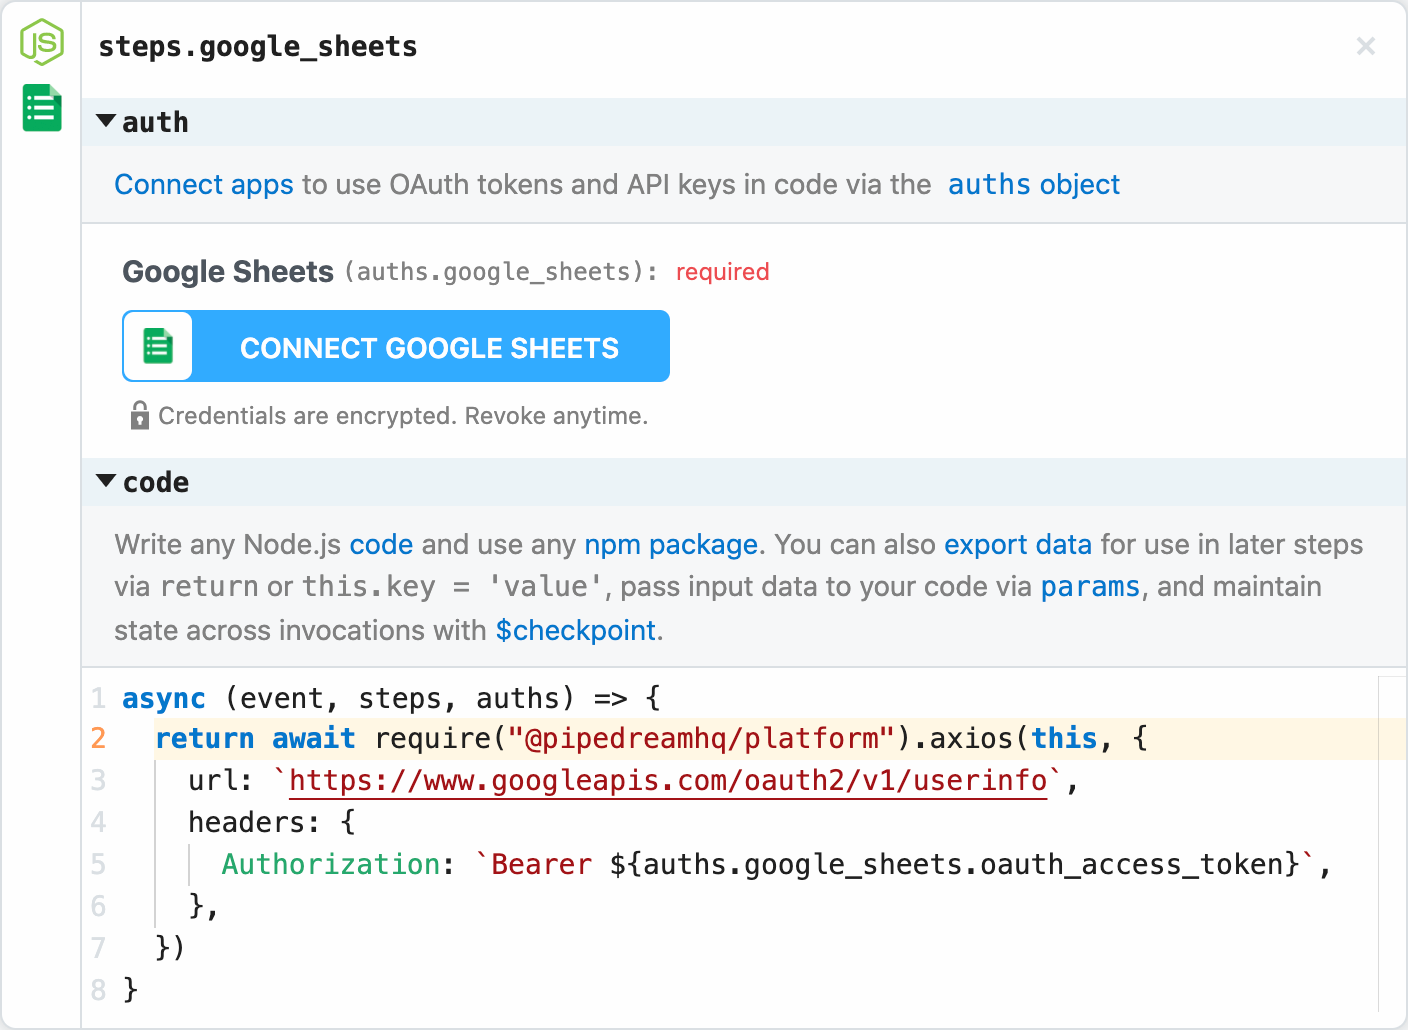 Managed authentication for 300+ OAuth and key-based APIs